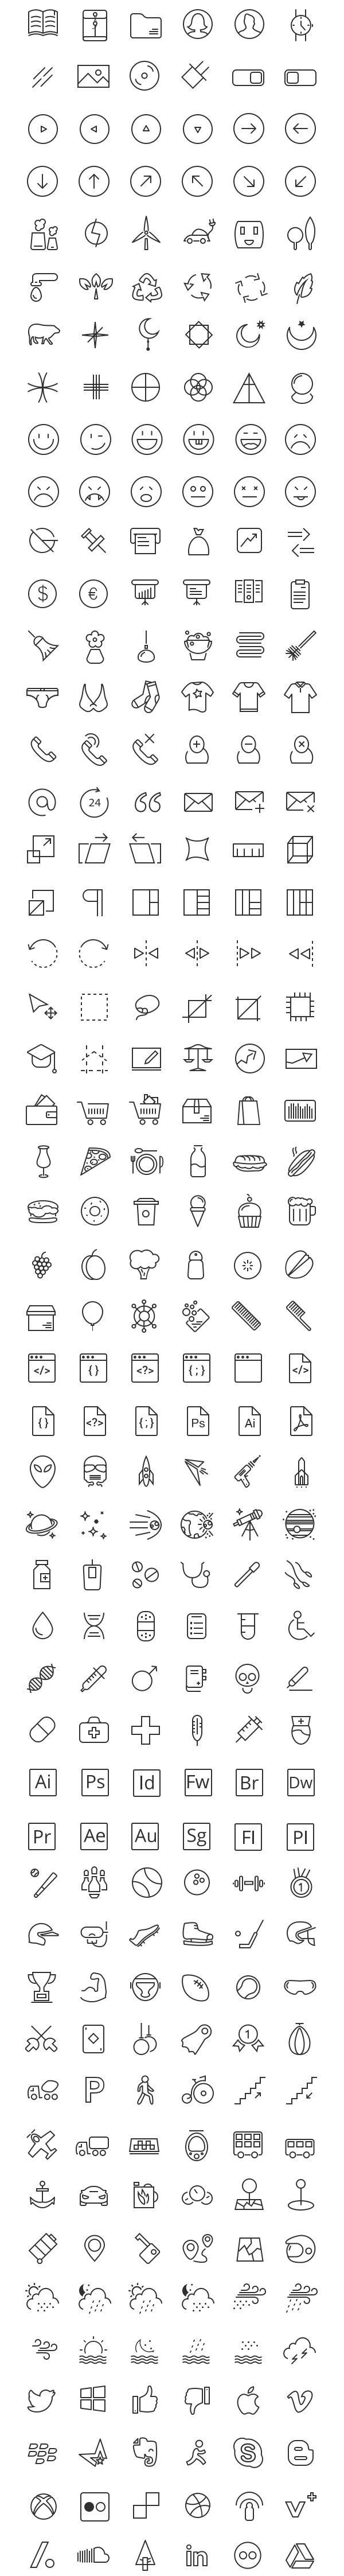 Free Download Retinaicon 300 Free Icons Following Apple S Ios